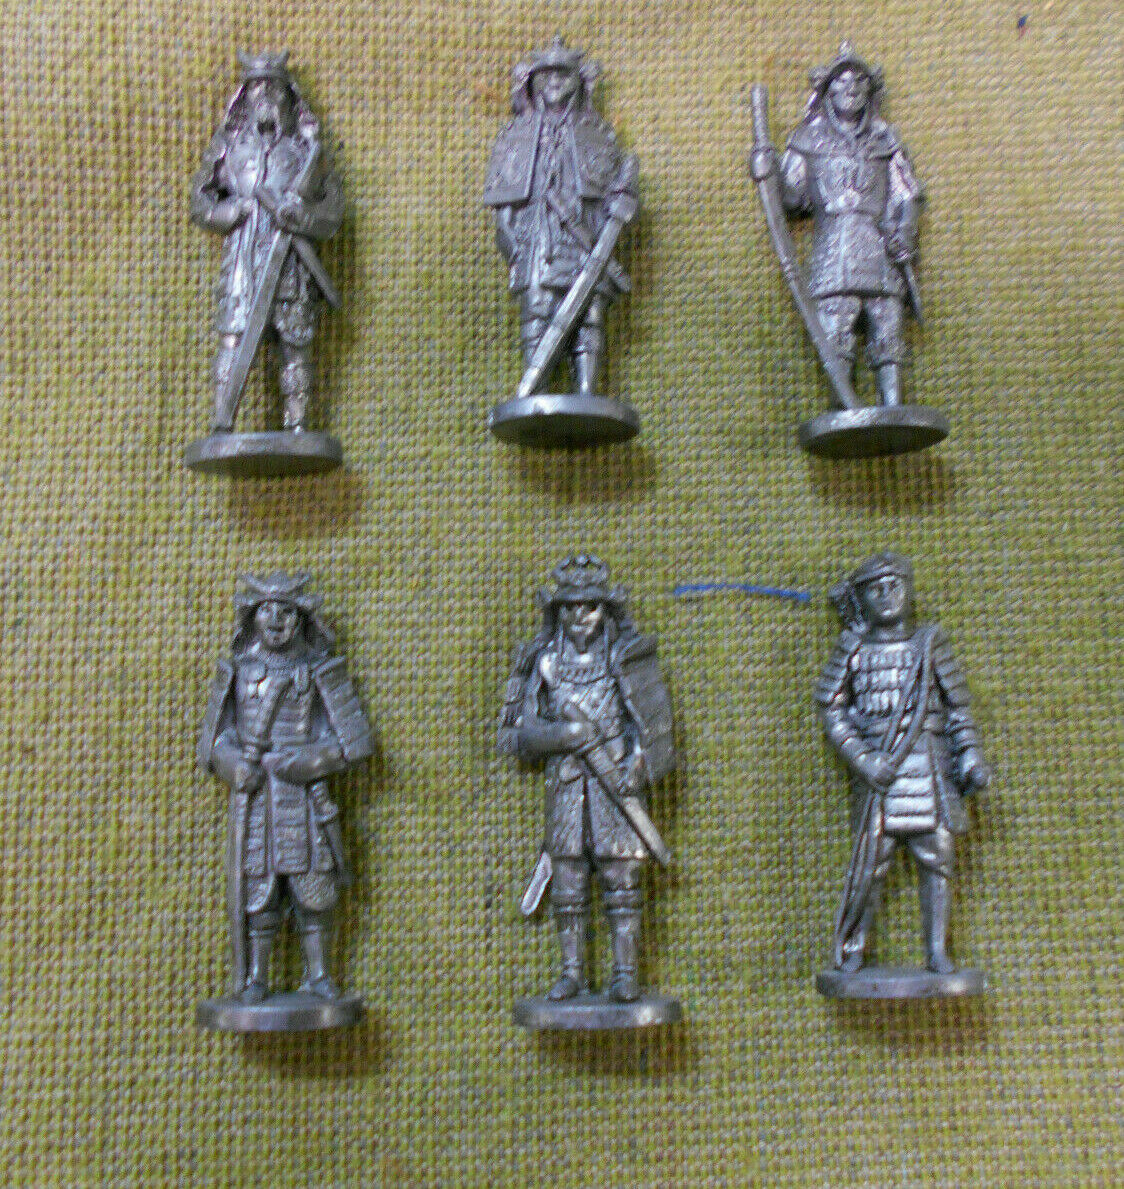 OO.   SET(6) OF 1990s  JAPANESE SAMURAI METAL FIGURES